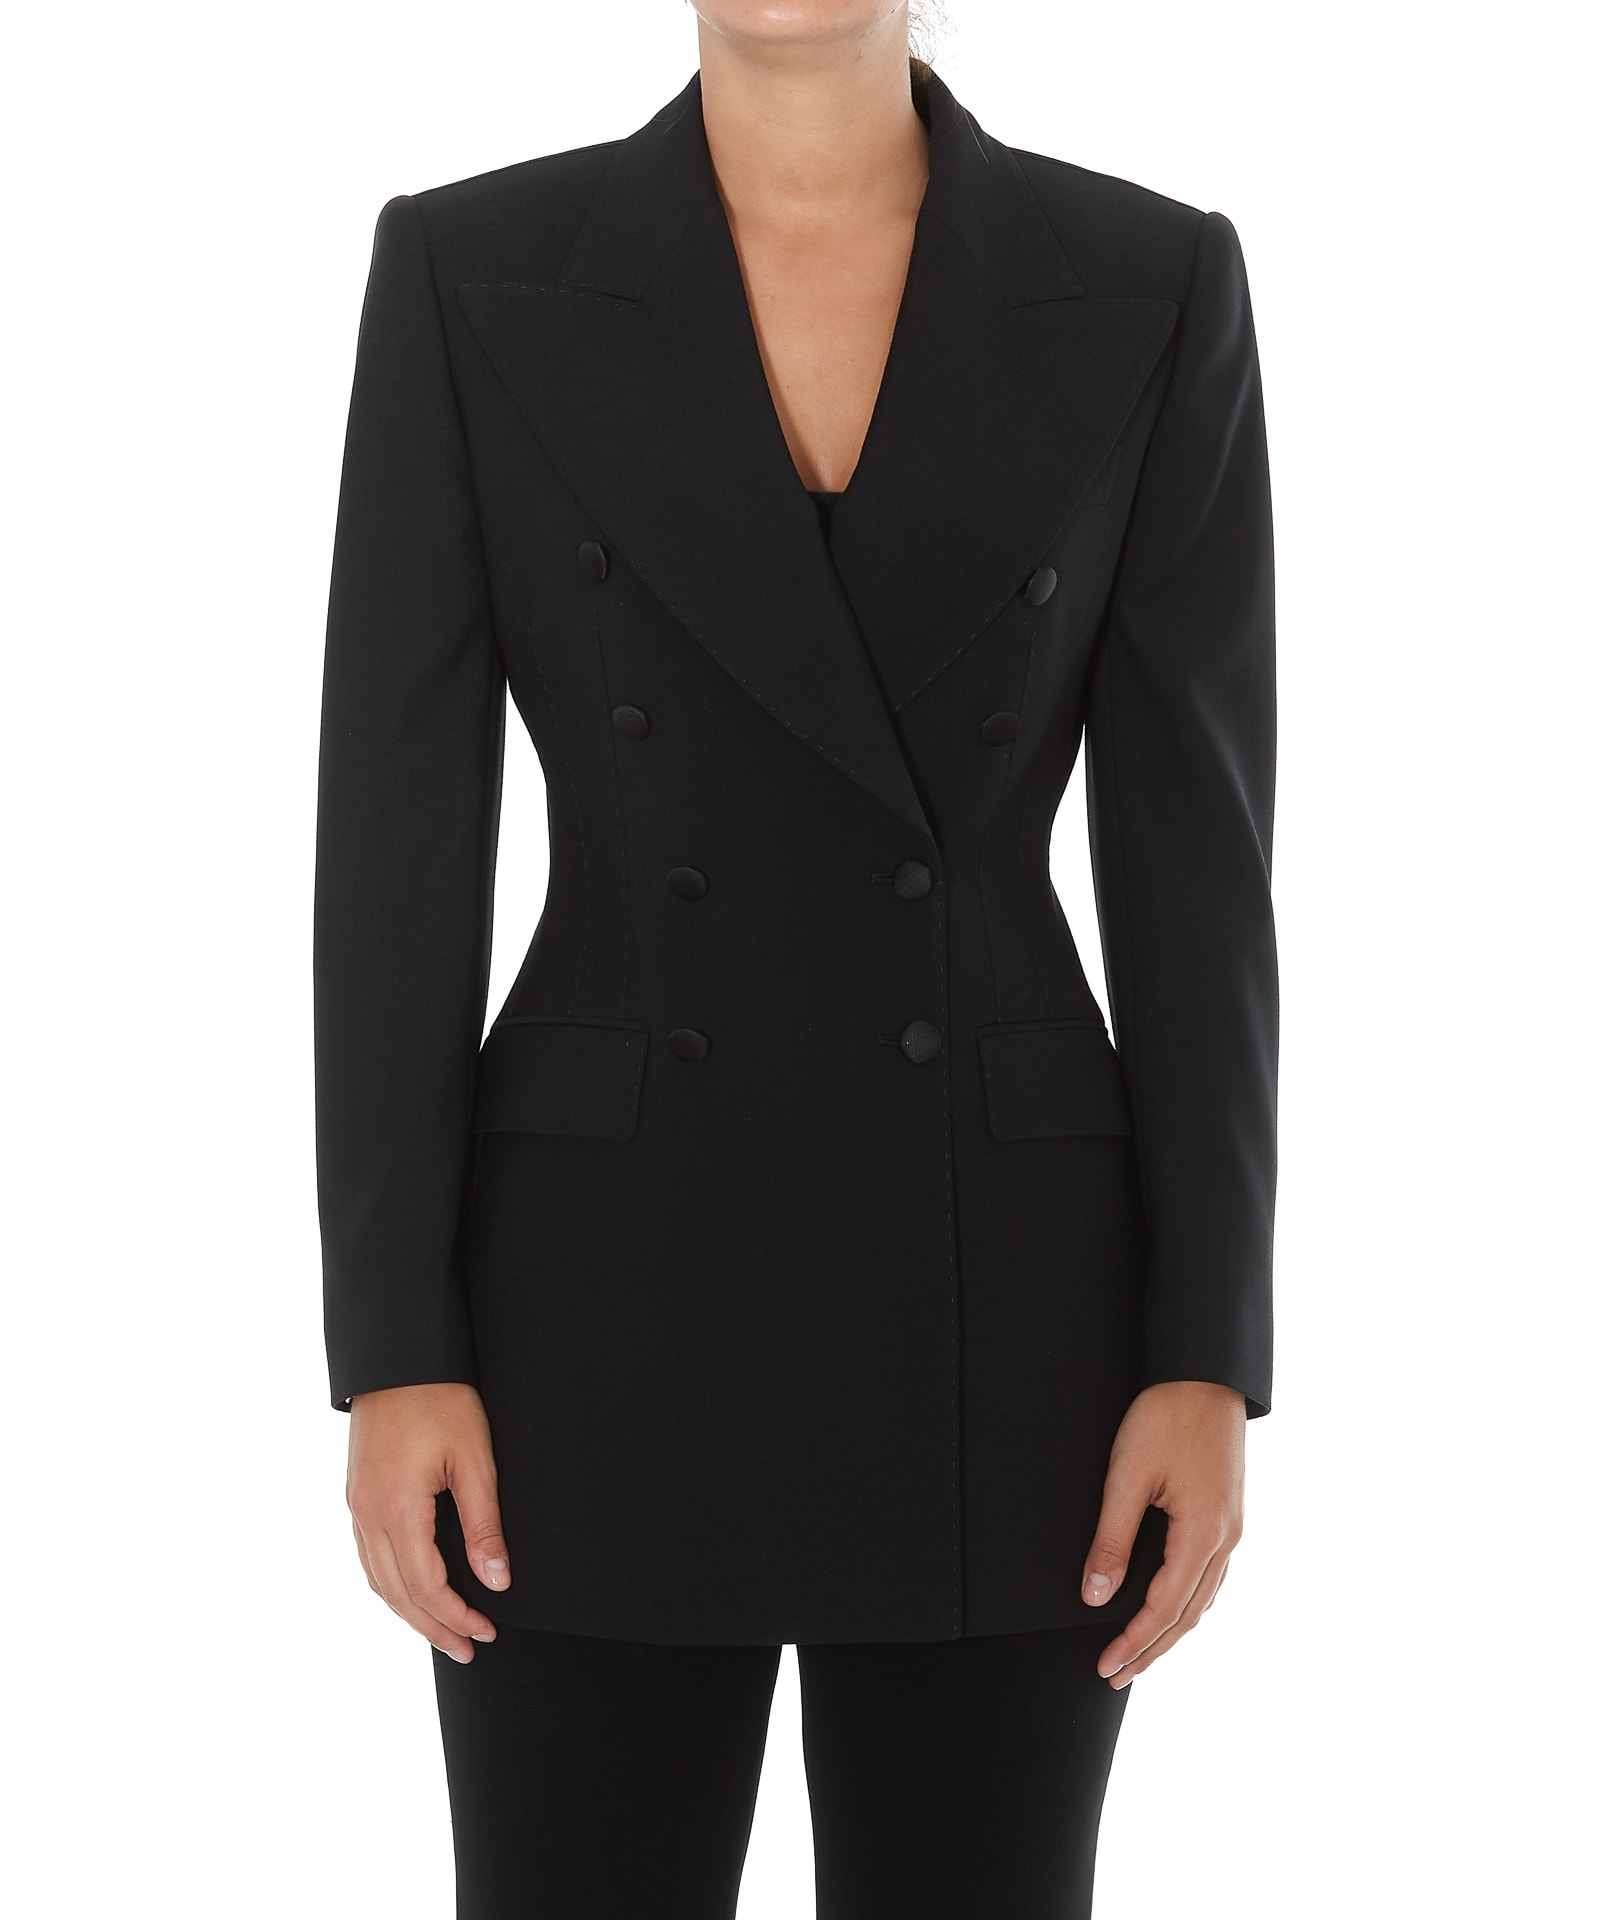 Photo of  Dolce & Gabbana Blazer- shop Dolce & Gabbana jackets online sales